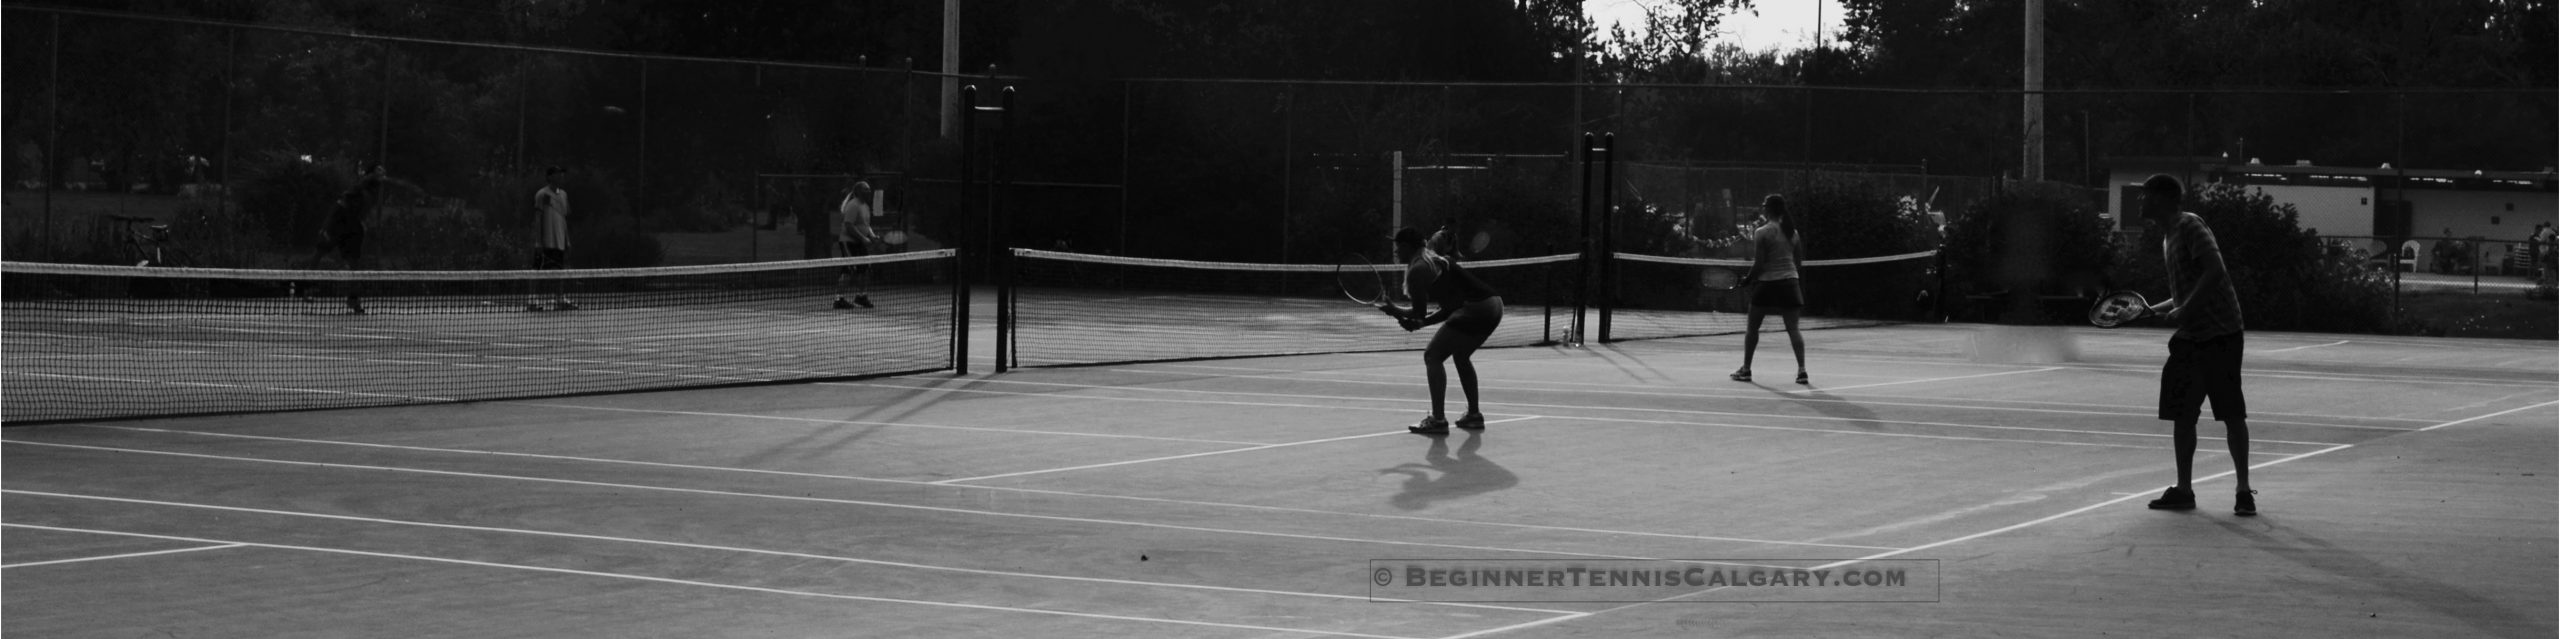 Tennis lessons calgary adults